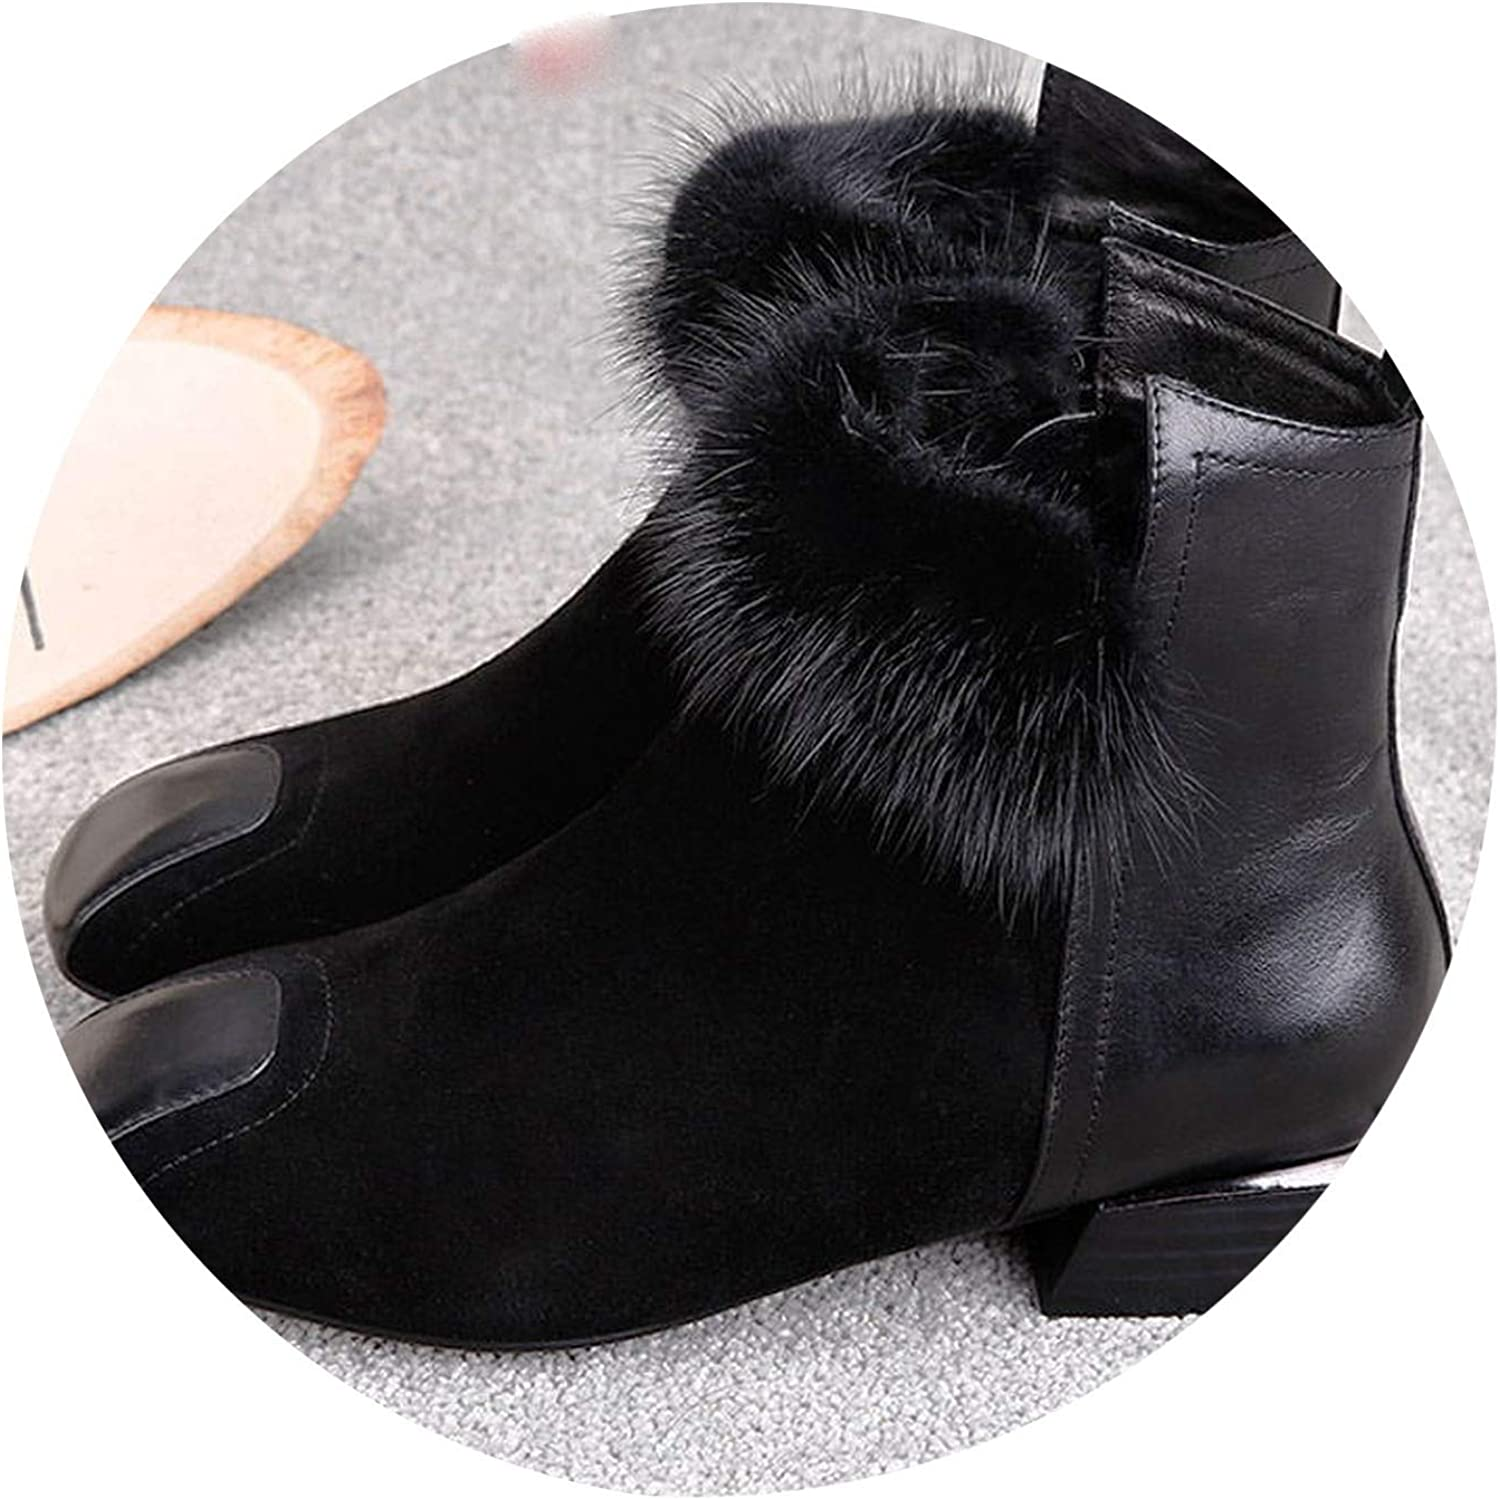 Designer Women Ankle Boots Faux Suede Fur Leather Boots Warm Plush Winter shoes Botas